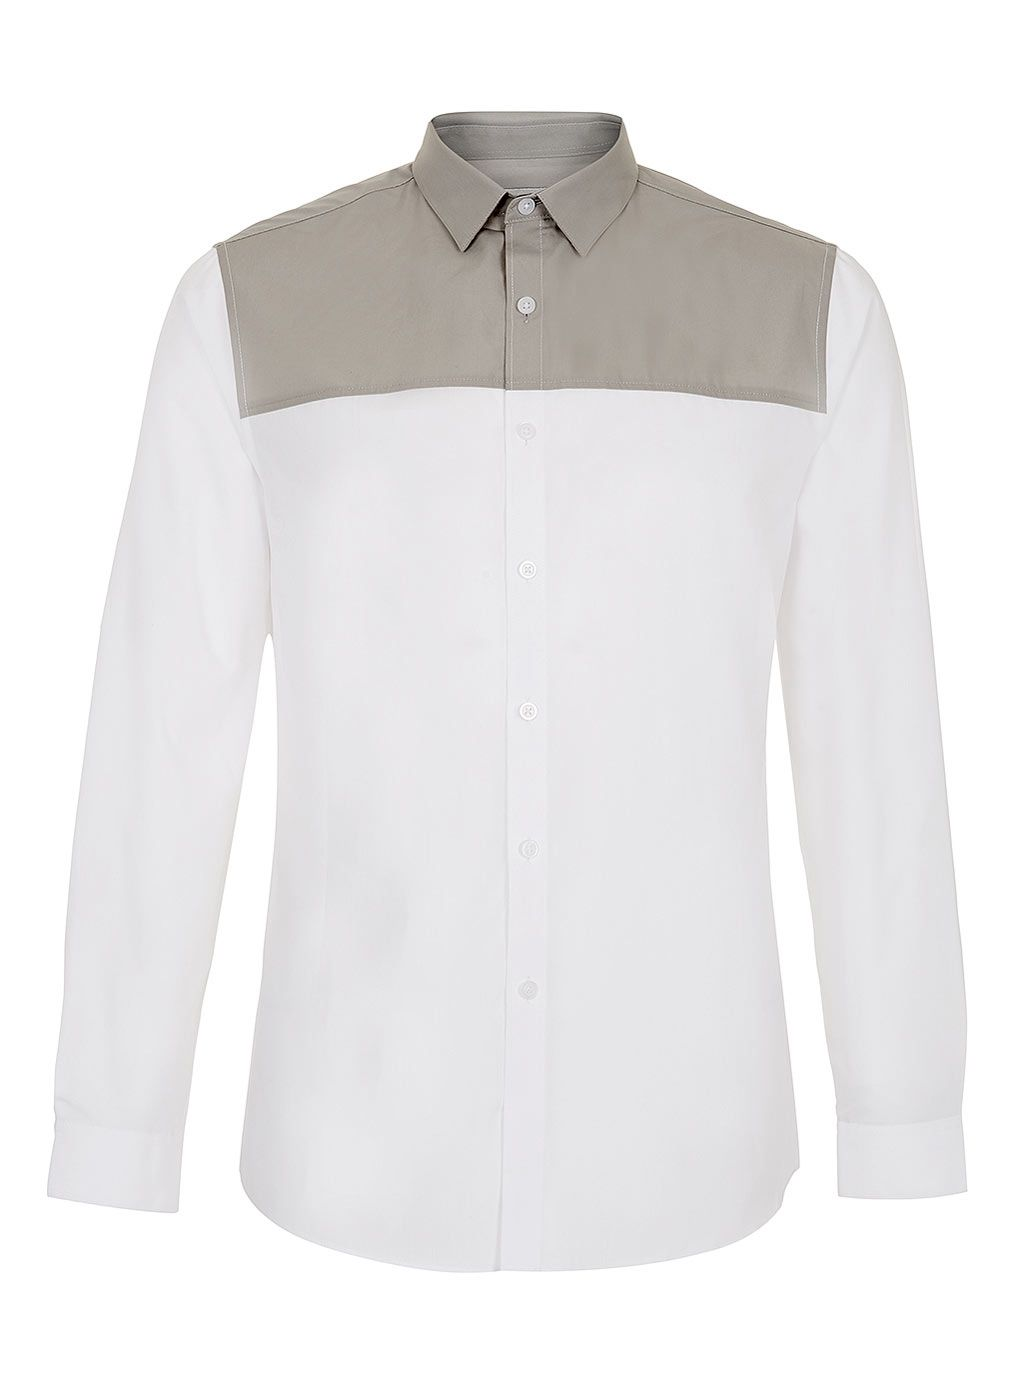 White Grey Yoke Long Sleeve Smart Shirt - Men's Shirts - Clothing - TOPMAN USA